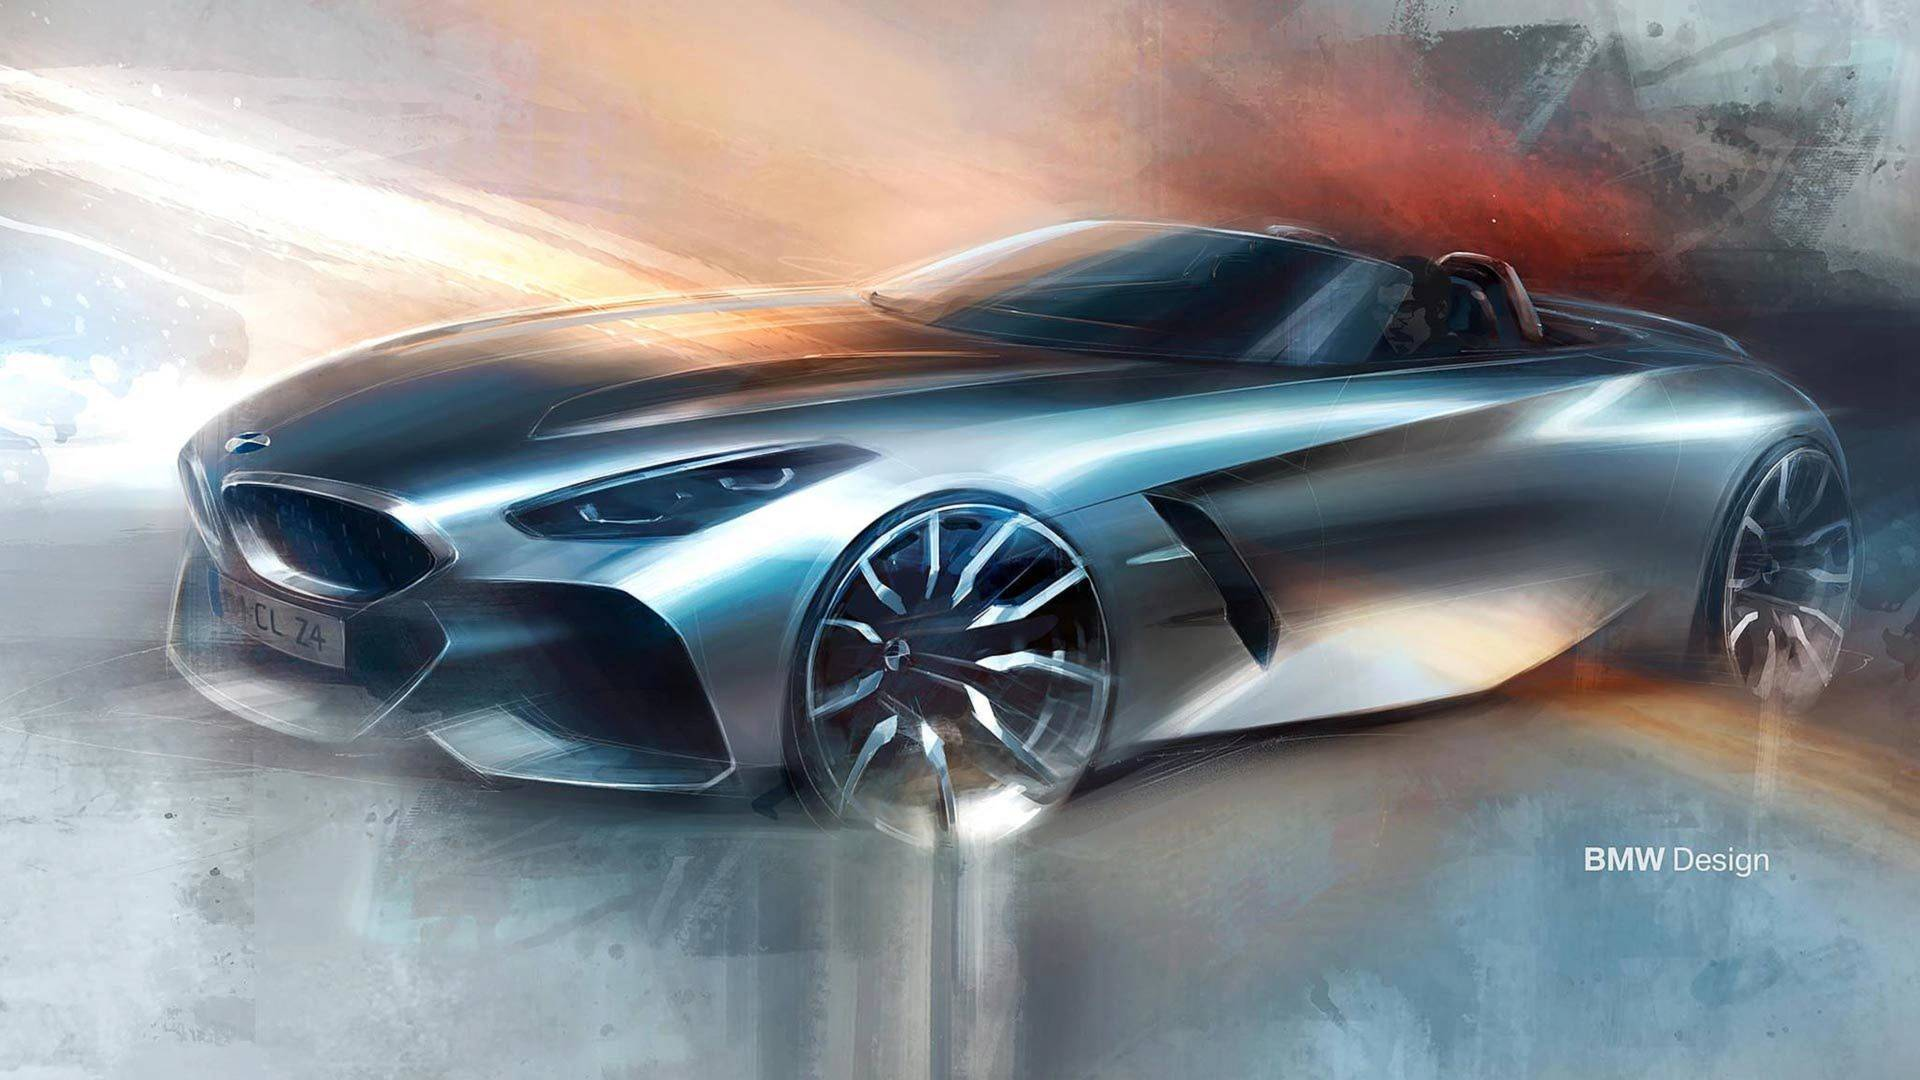 2019 Bmw Z4 First Edition Teased Ahead Of Reveal